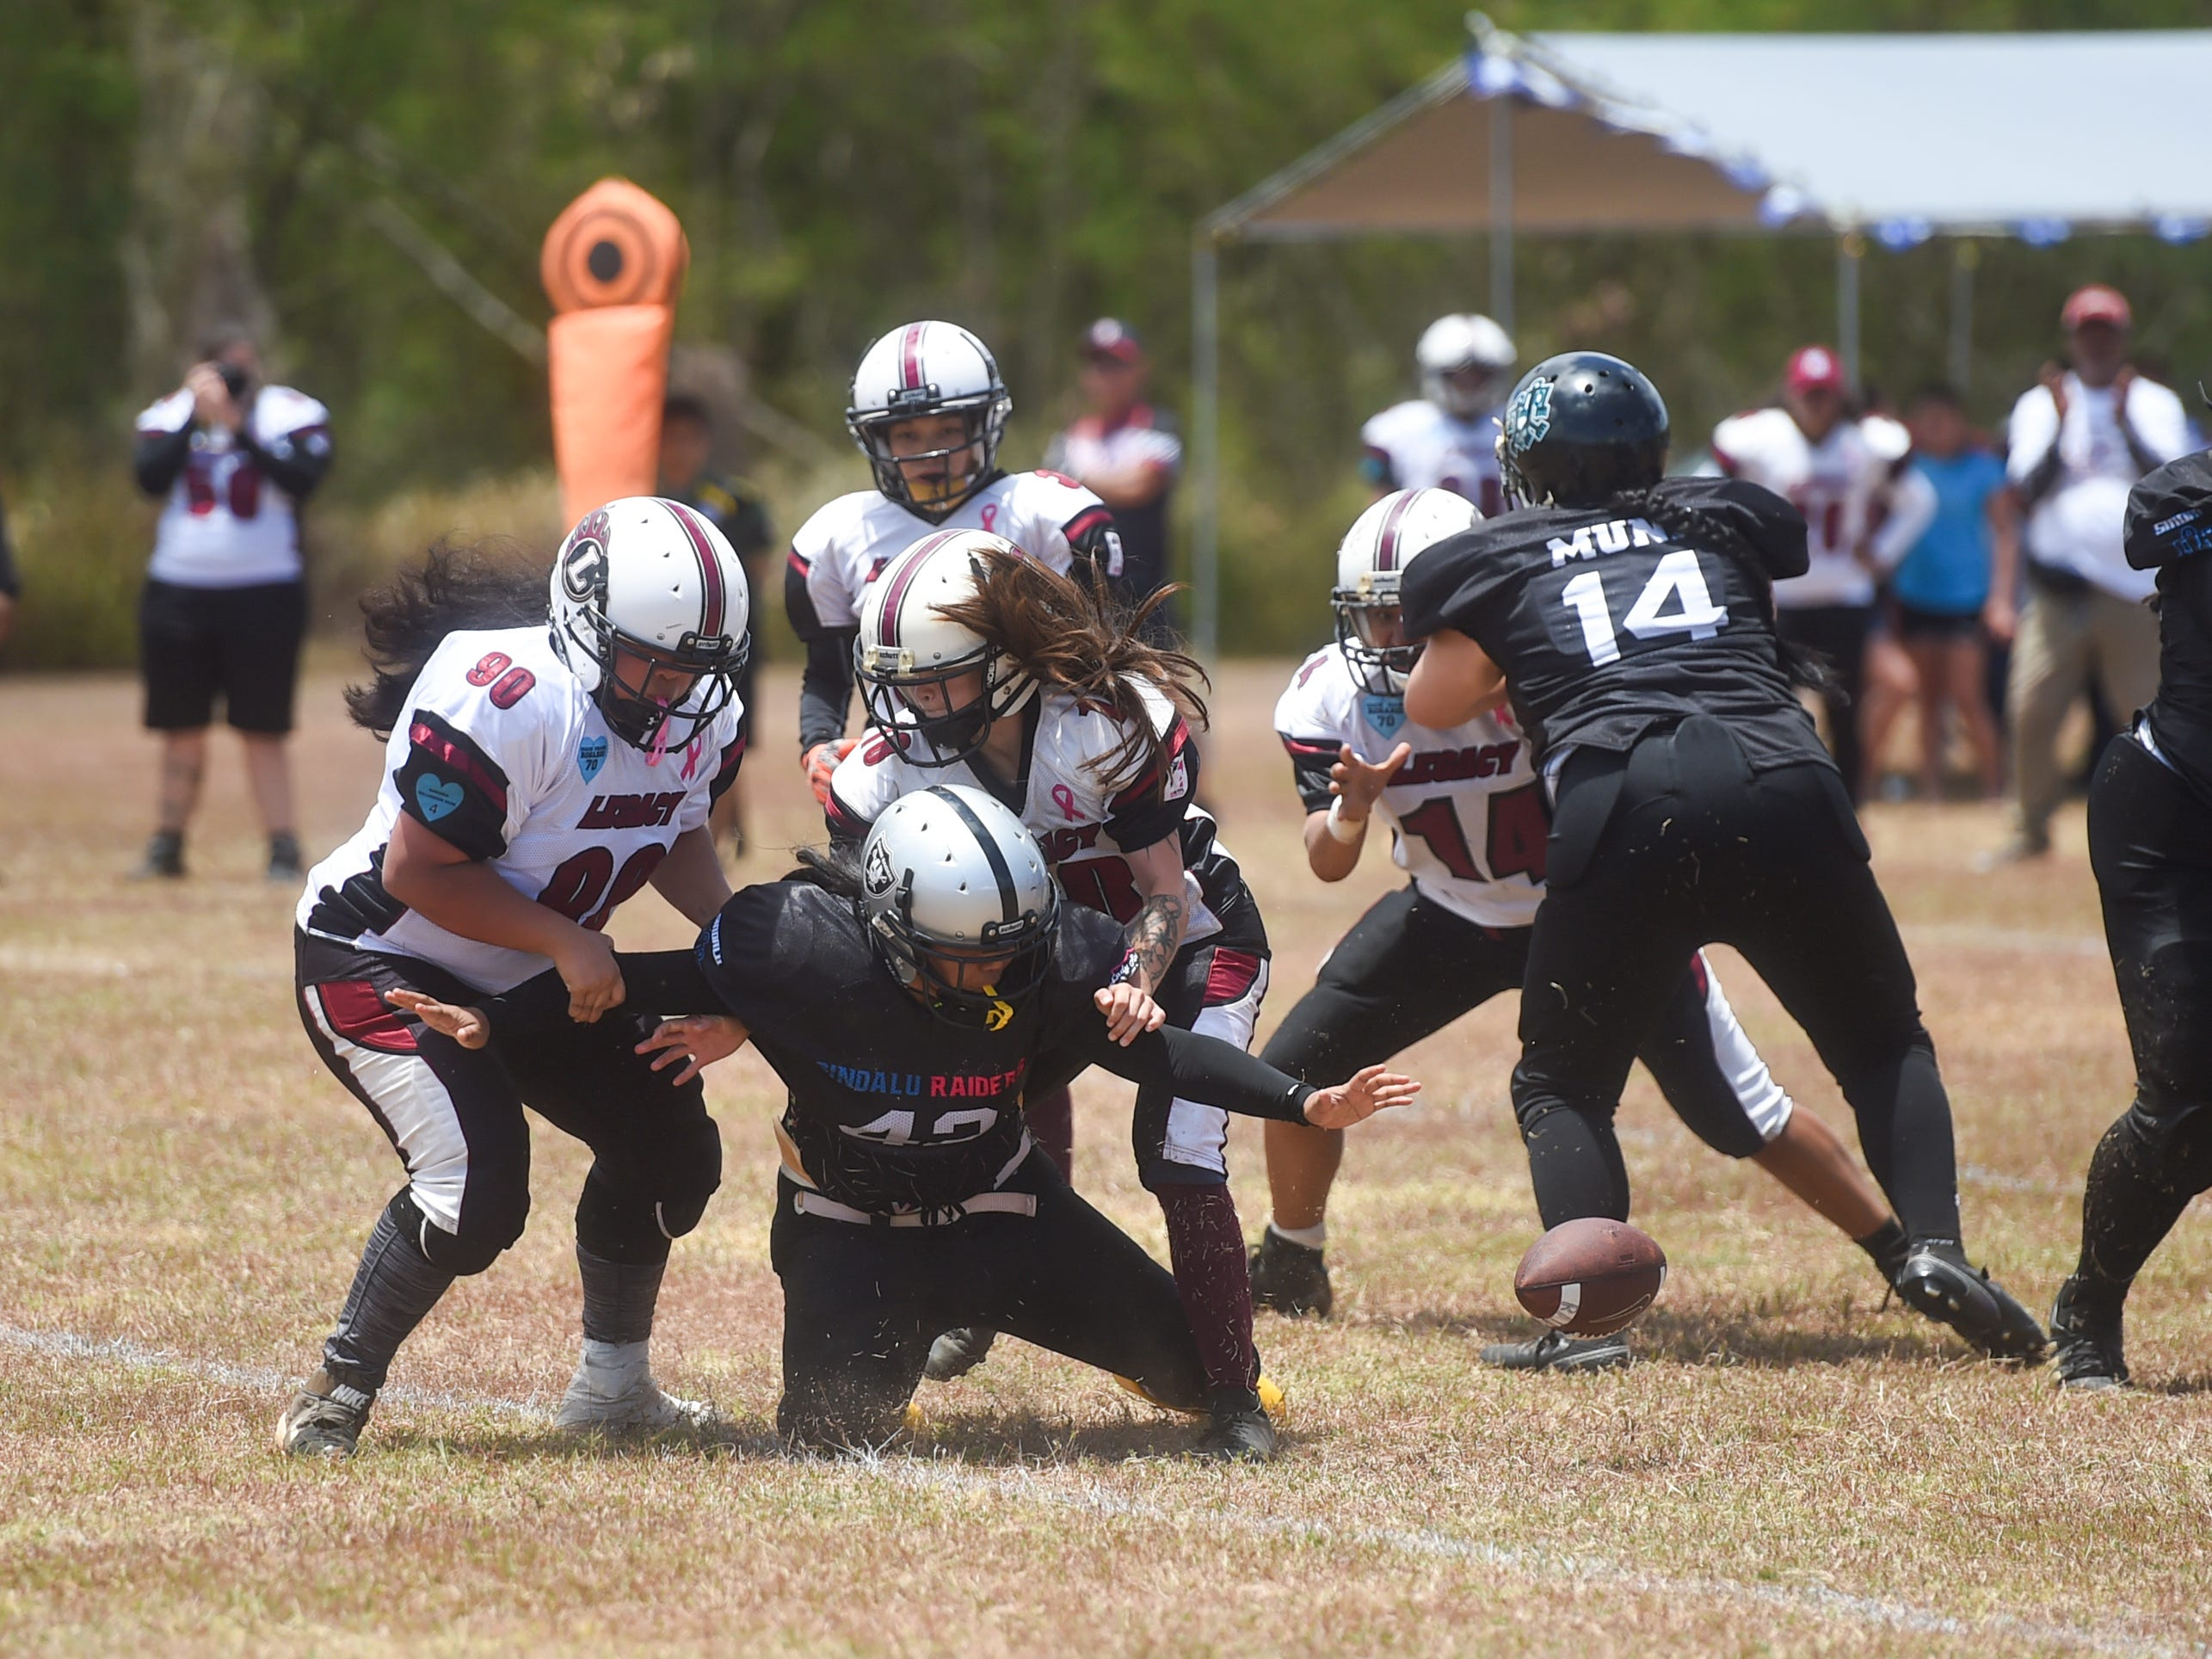 Legacy players force a fumble against the Sindalu/Raiders during their 2019 Bud Light GWTFL game at the University of Guam Field in Mangilao, May 11, 2019. Legacy came away with a 20-0 victory for their second game of the season.